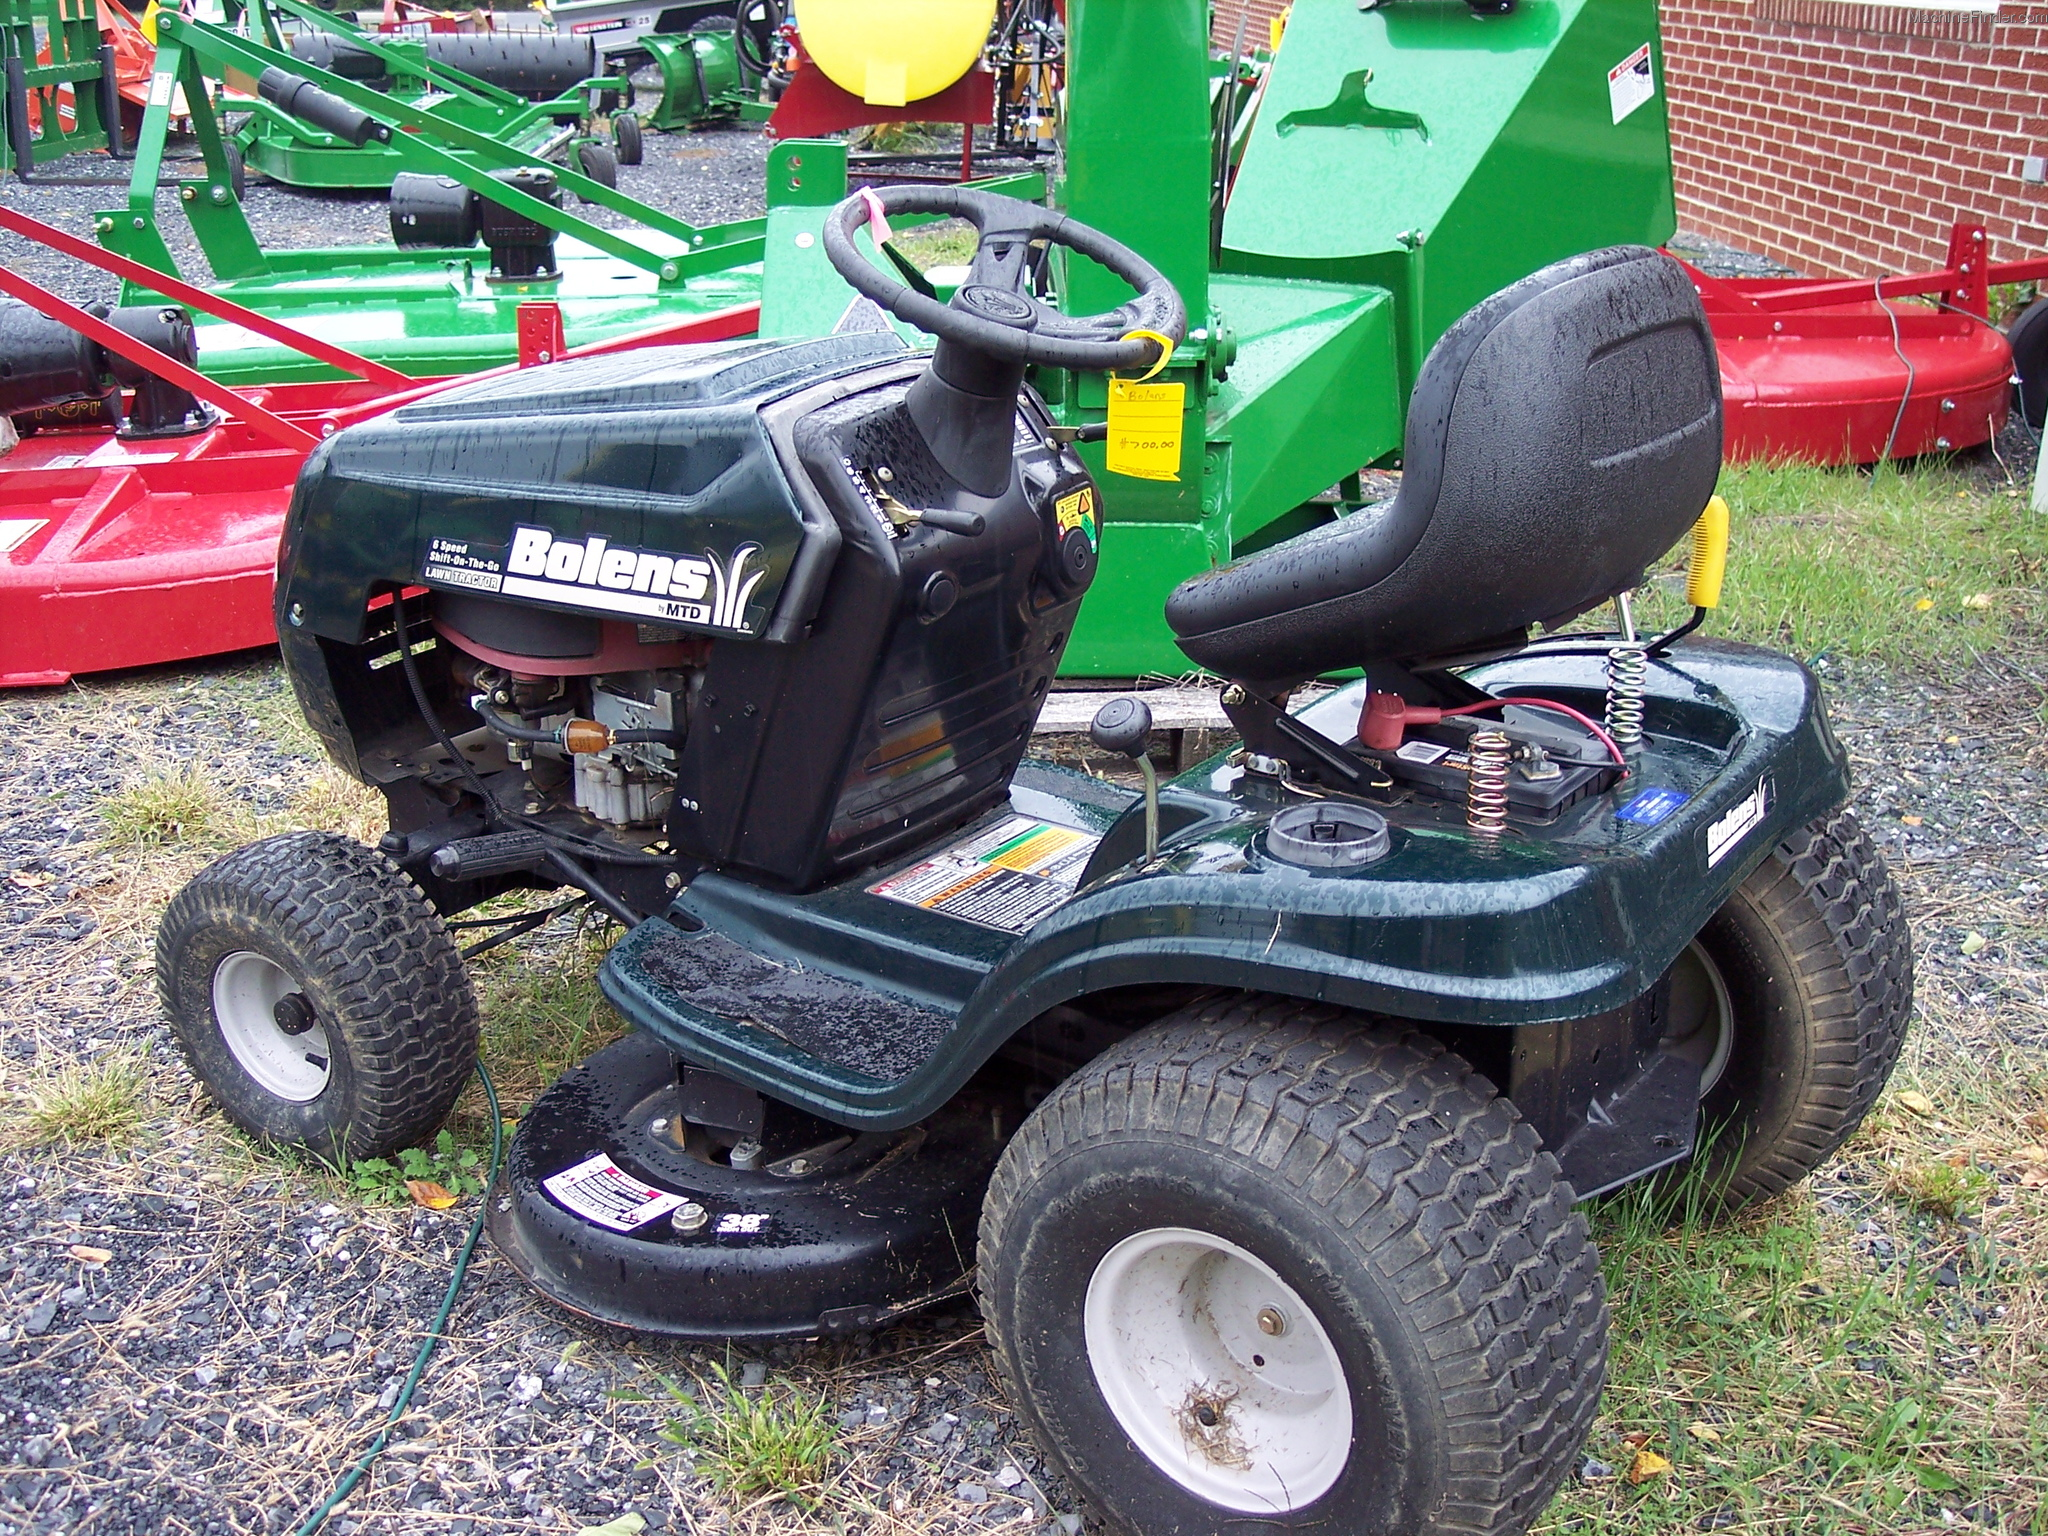 Tractor bolens riding lawn mowers pictures to pin on for Lawn and garden implements